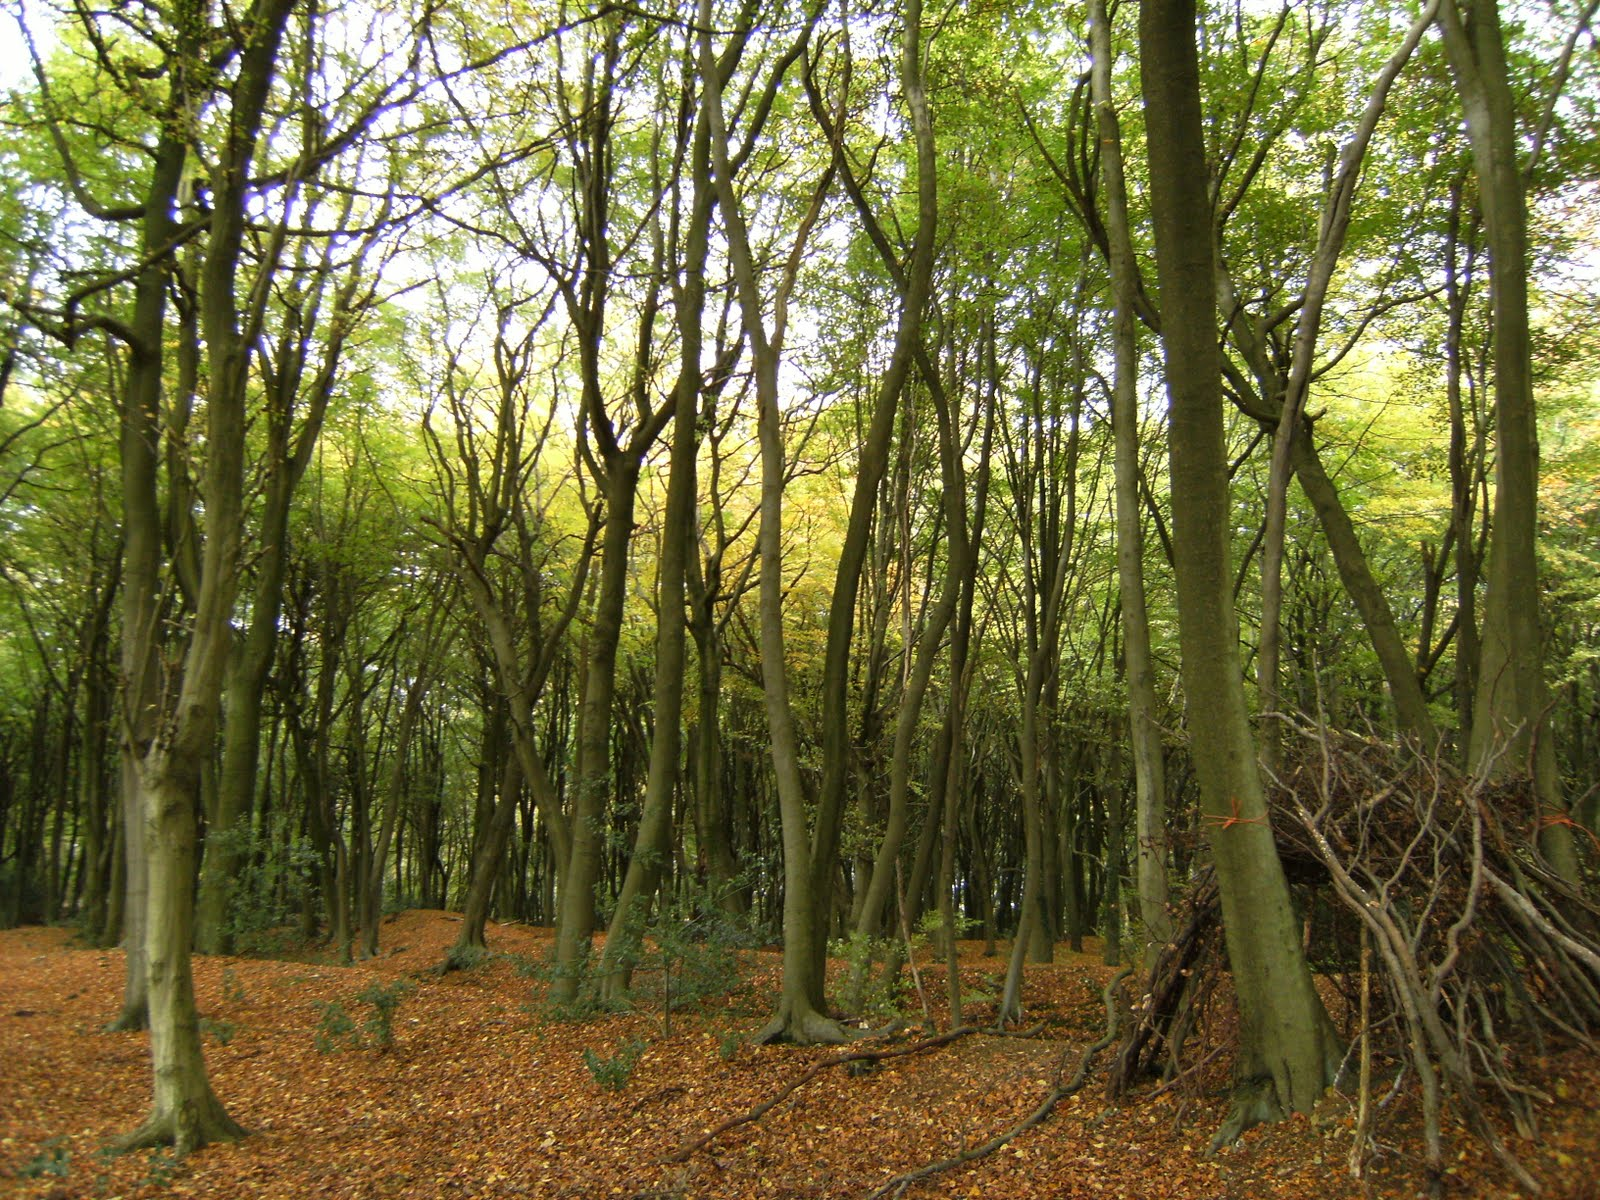 DSCF2154 Beech wood, South Heath